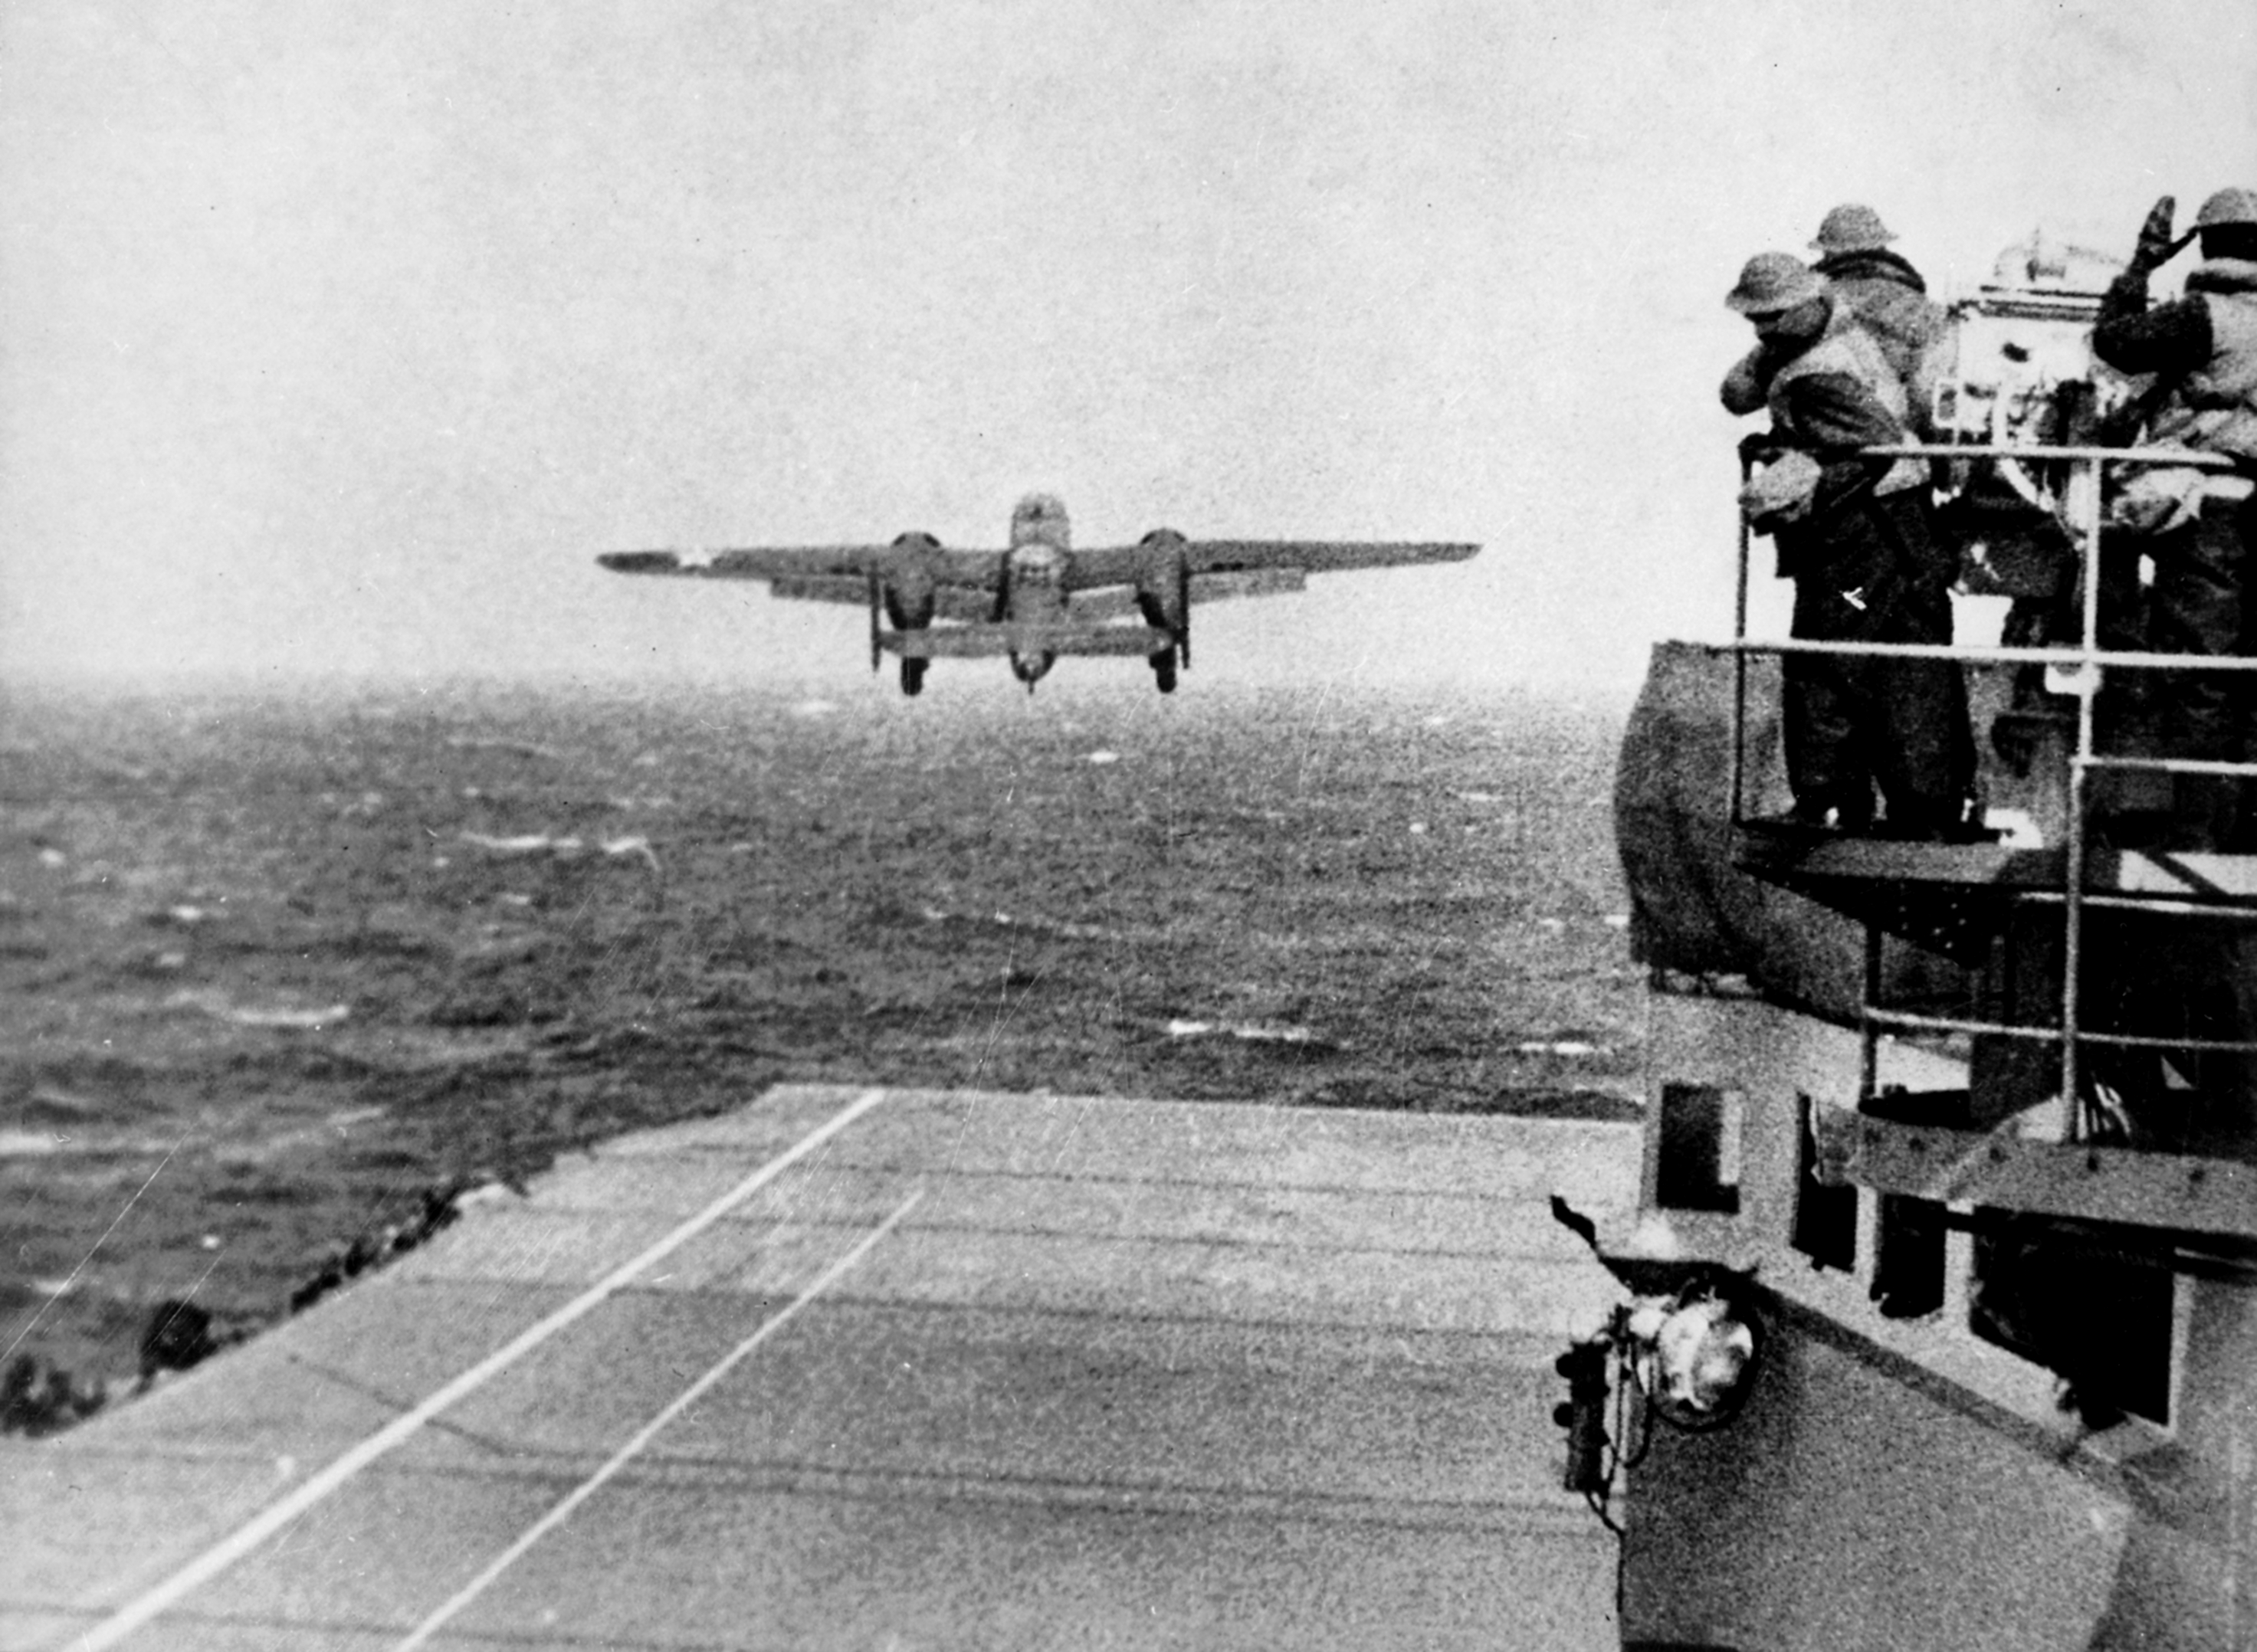 B-25 taking off from the Hornet.  From NARA, ARC Identifier 520603 via Wikipedia.